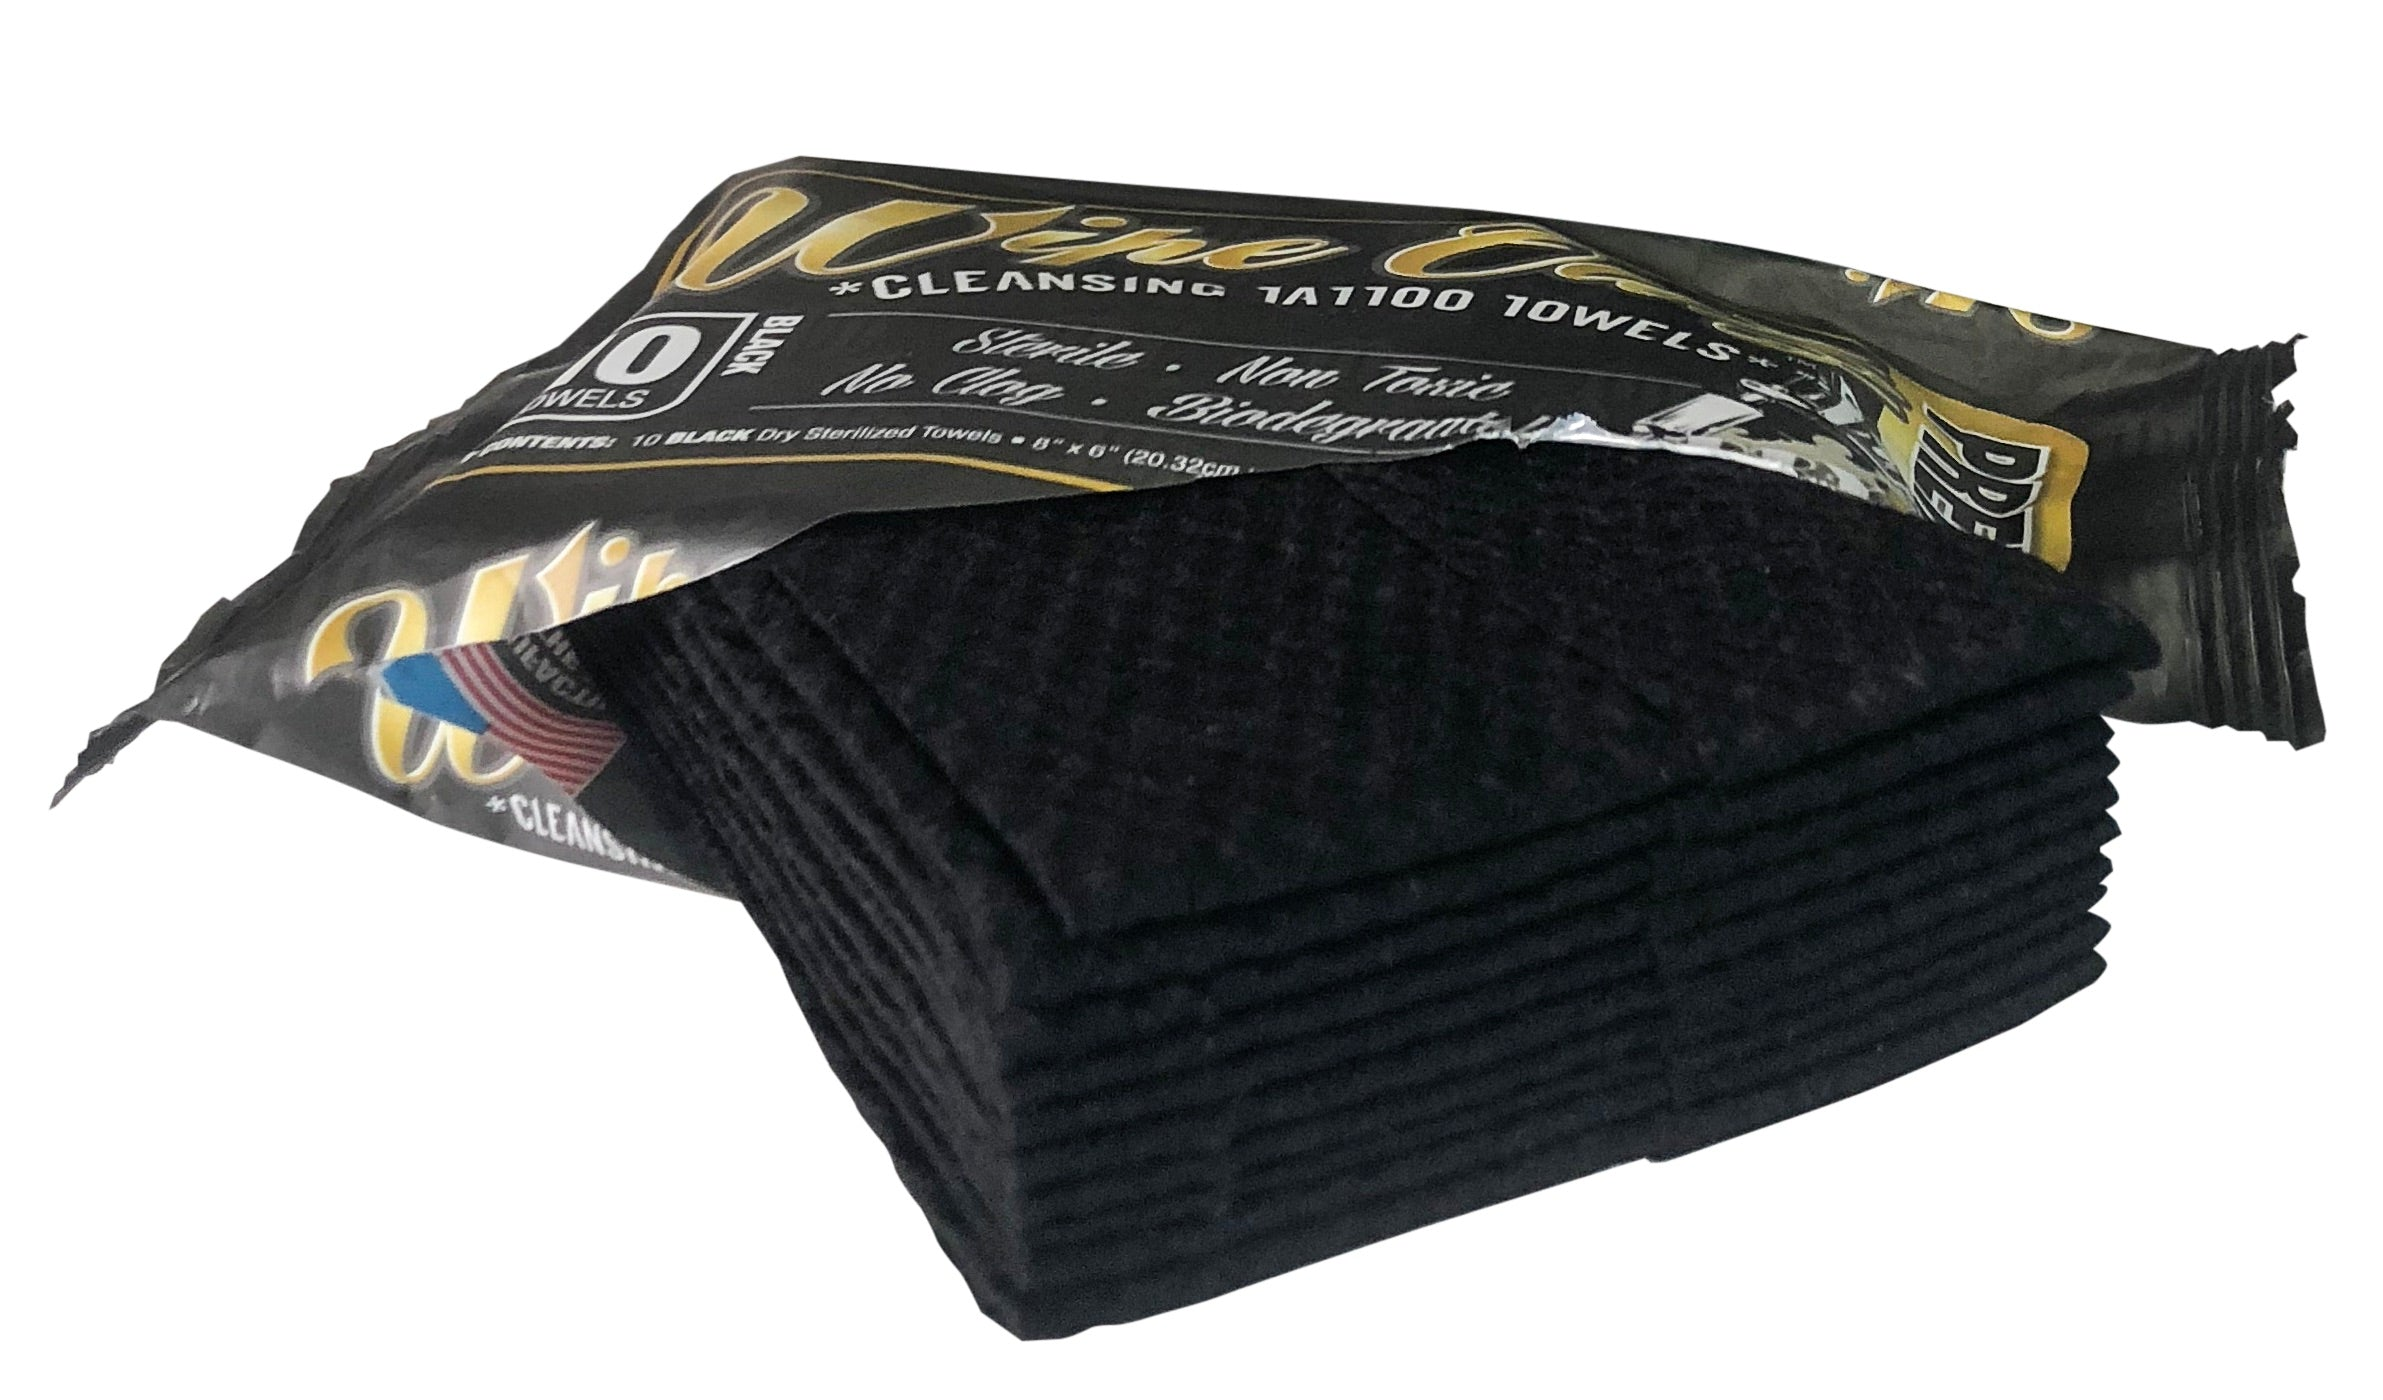 Wipe Outz Premium Tattoo Towels. Dry-Black (48 Packs X $2.75)